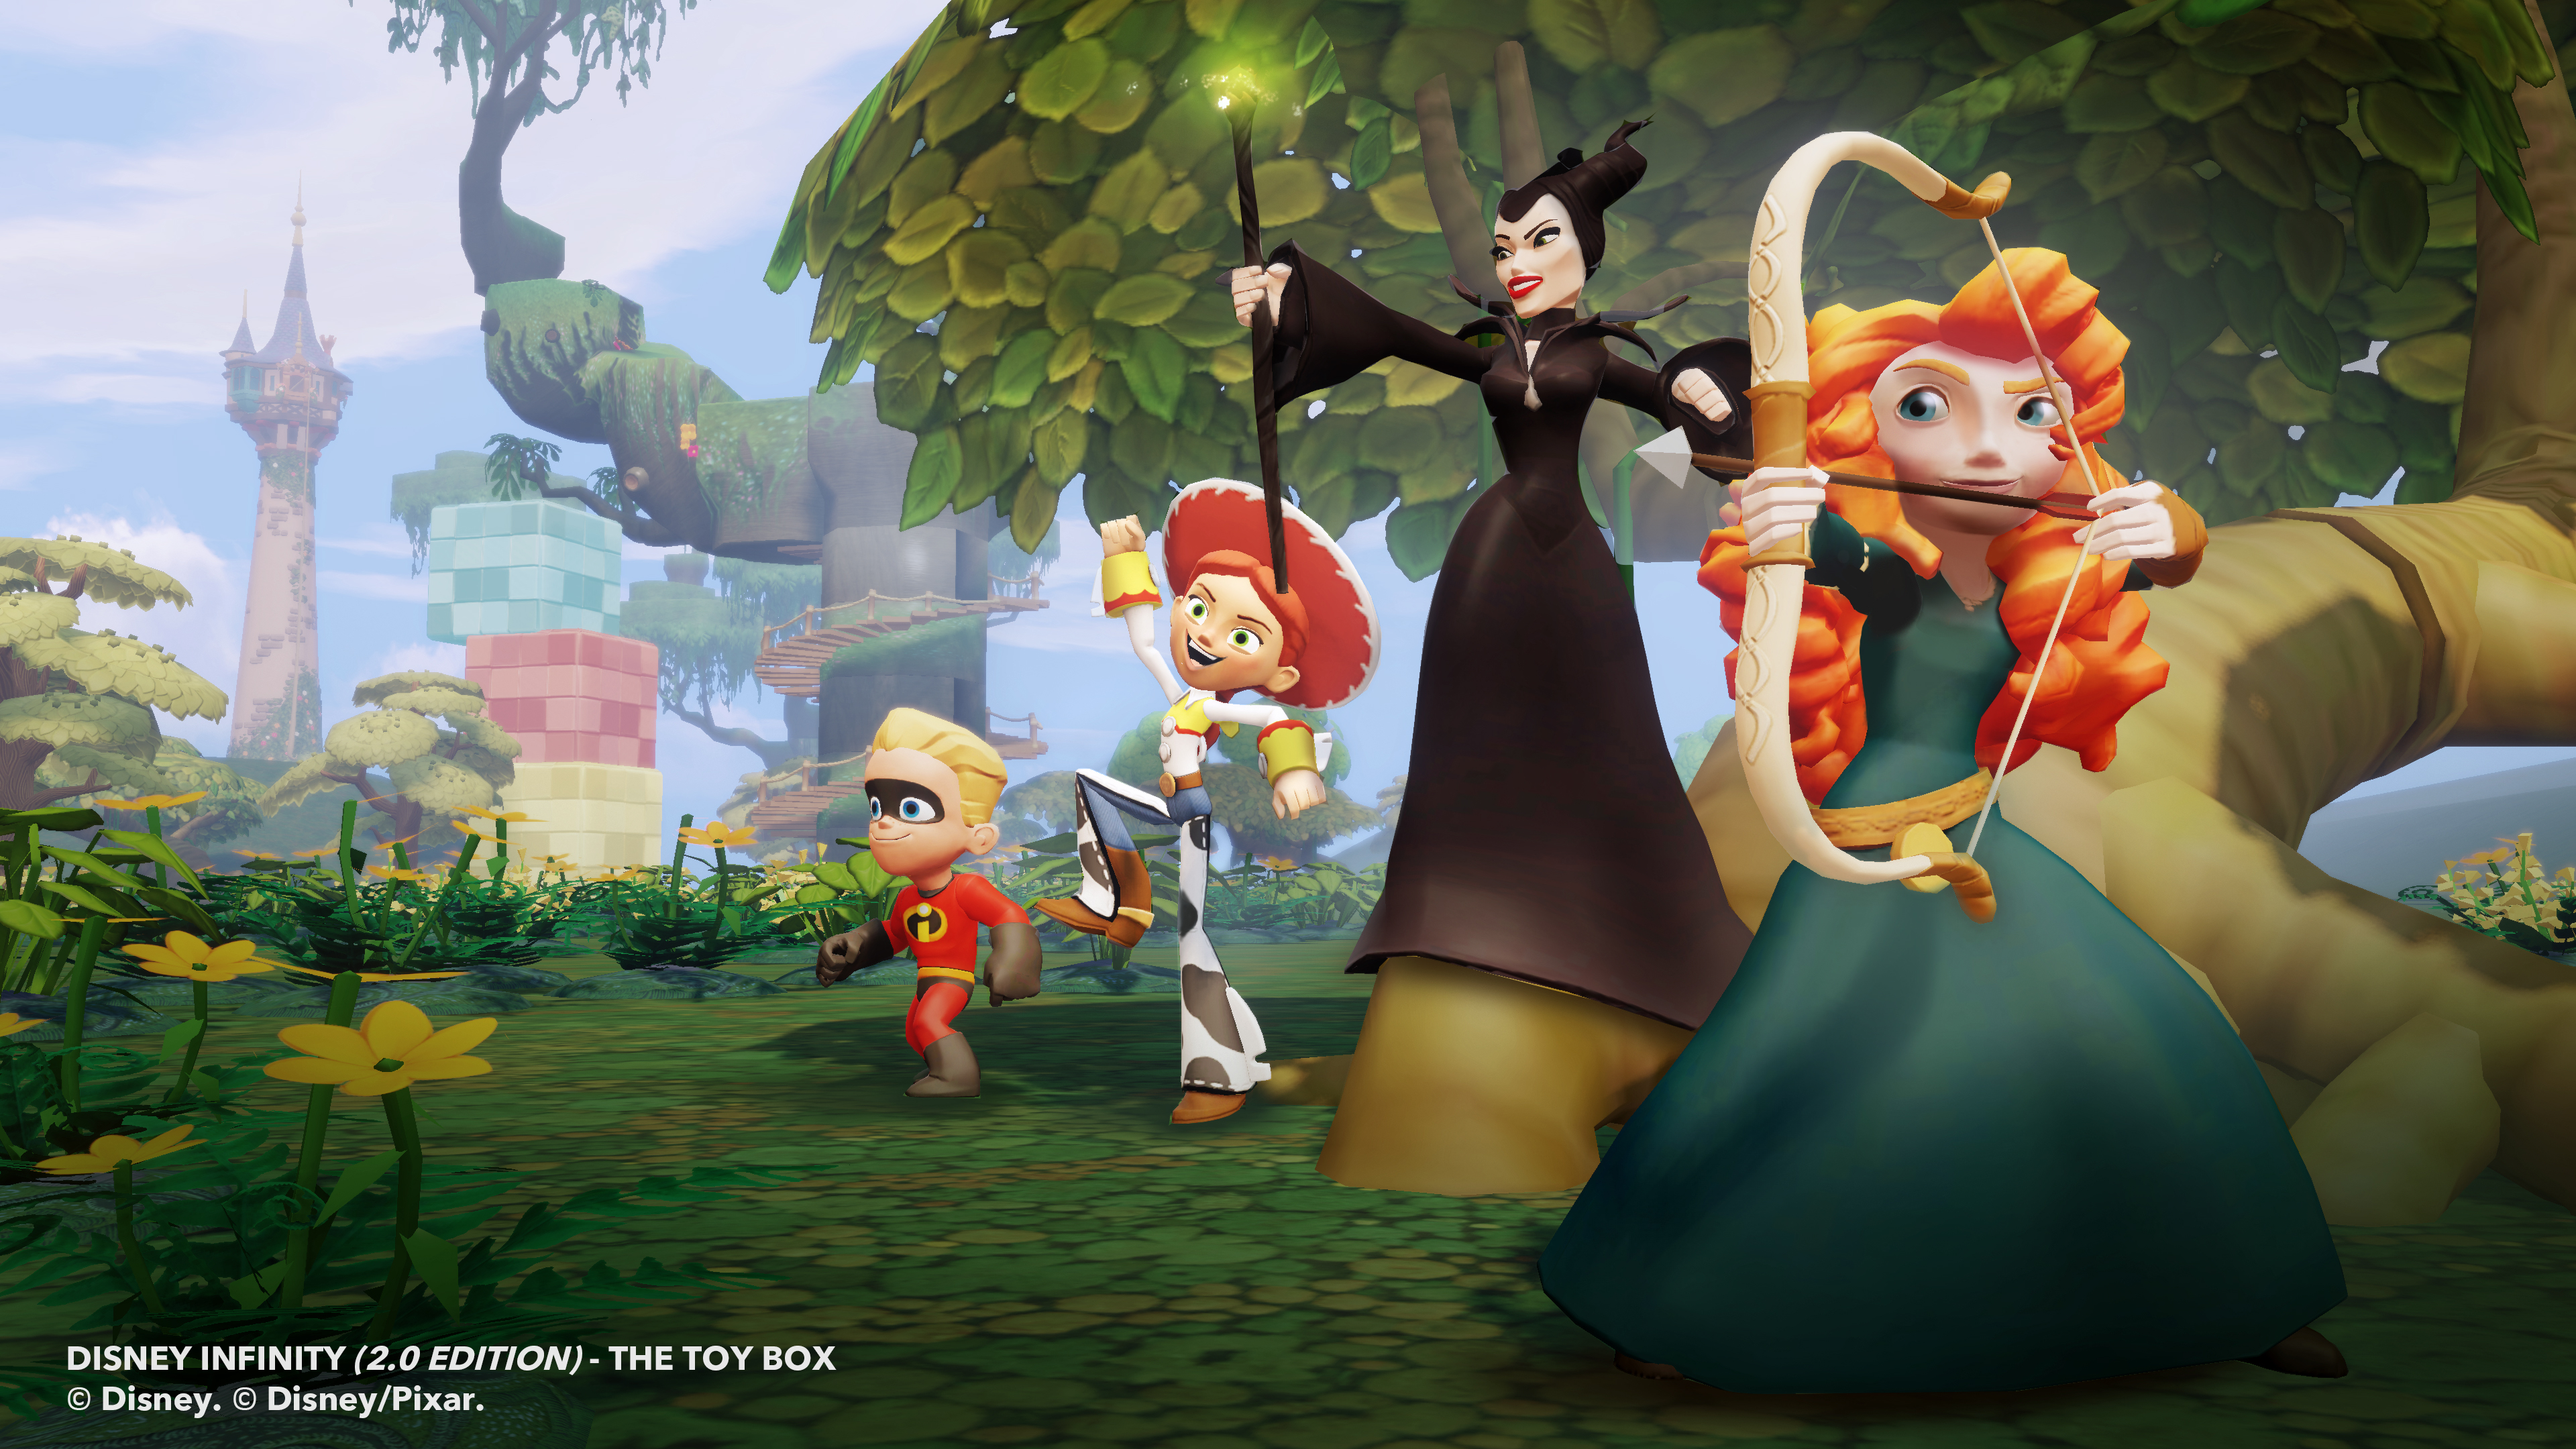 Disney Makes A Major Push Into Mobile Games With New